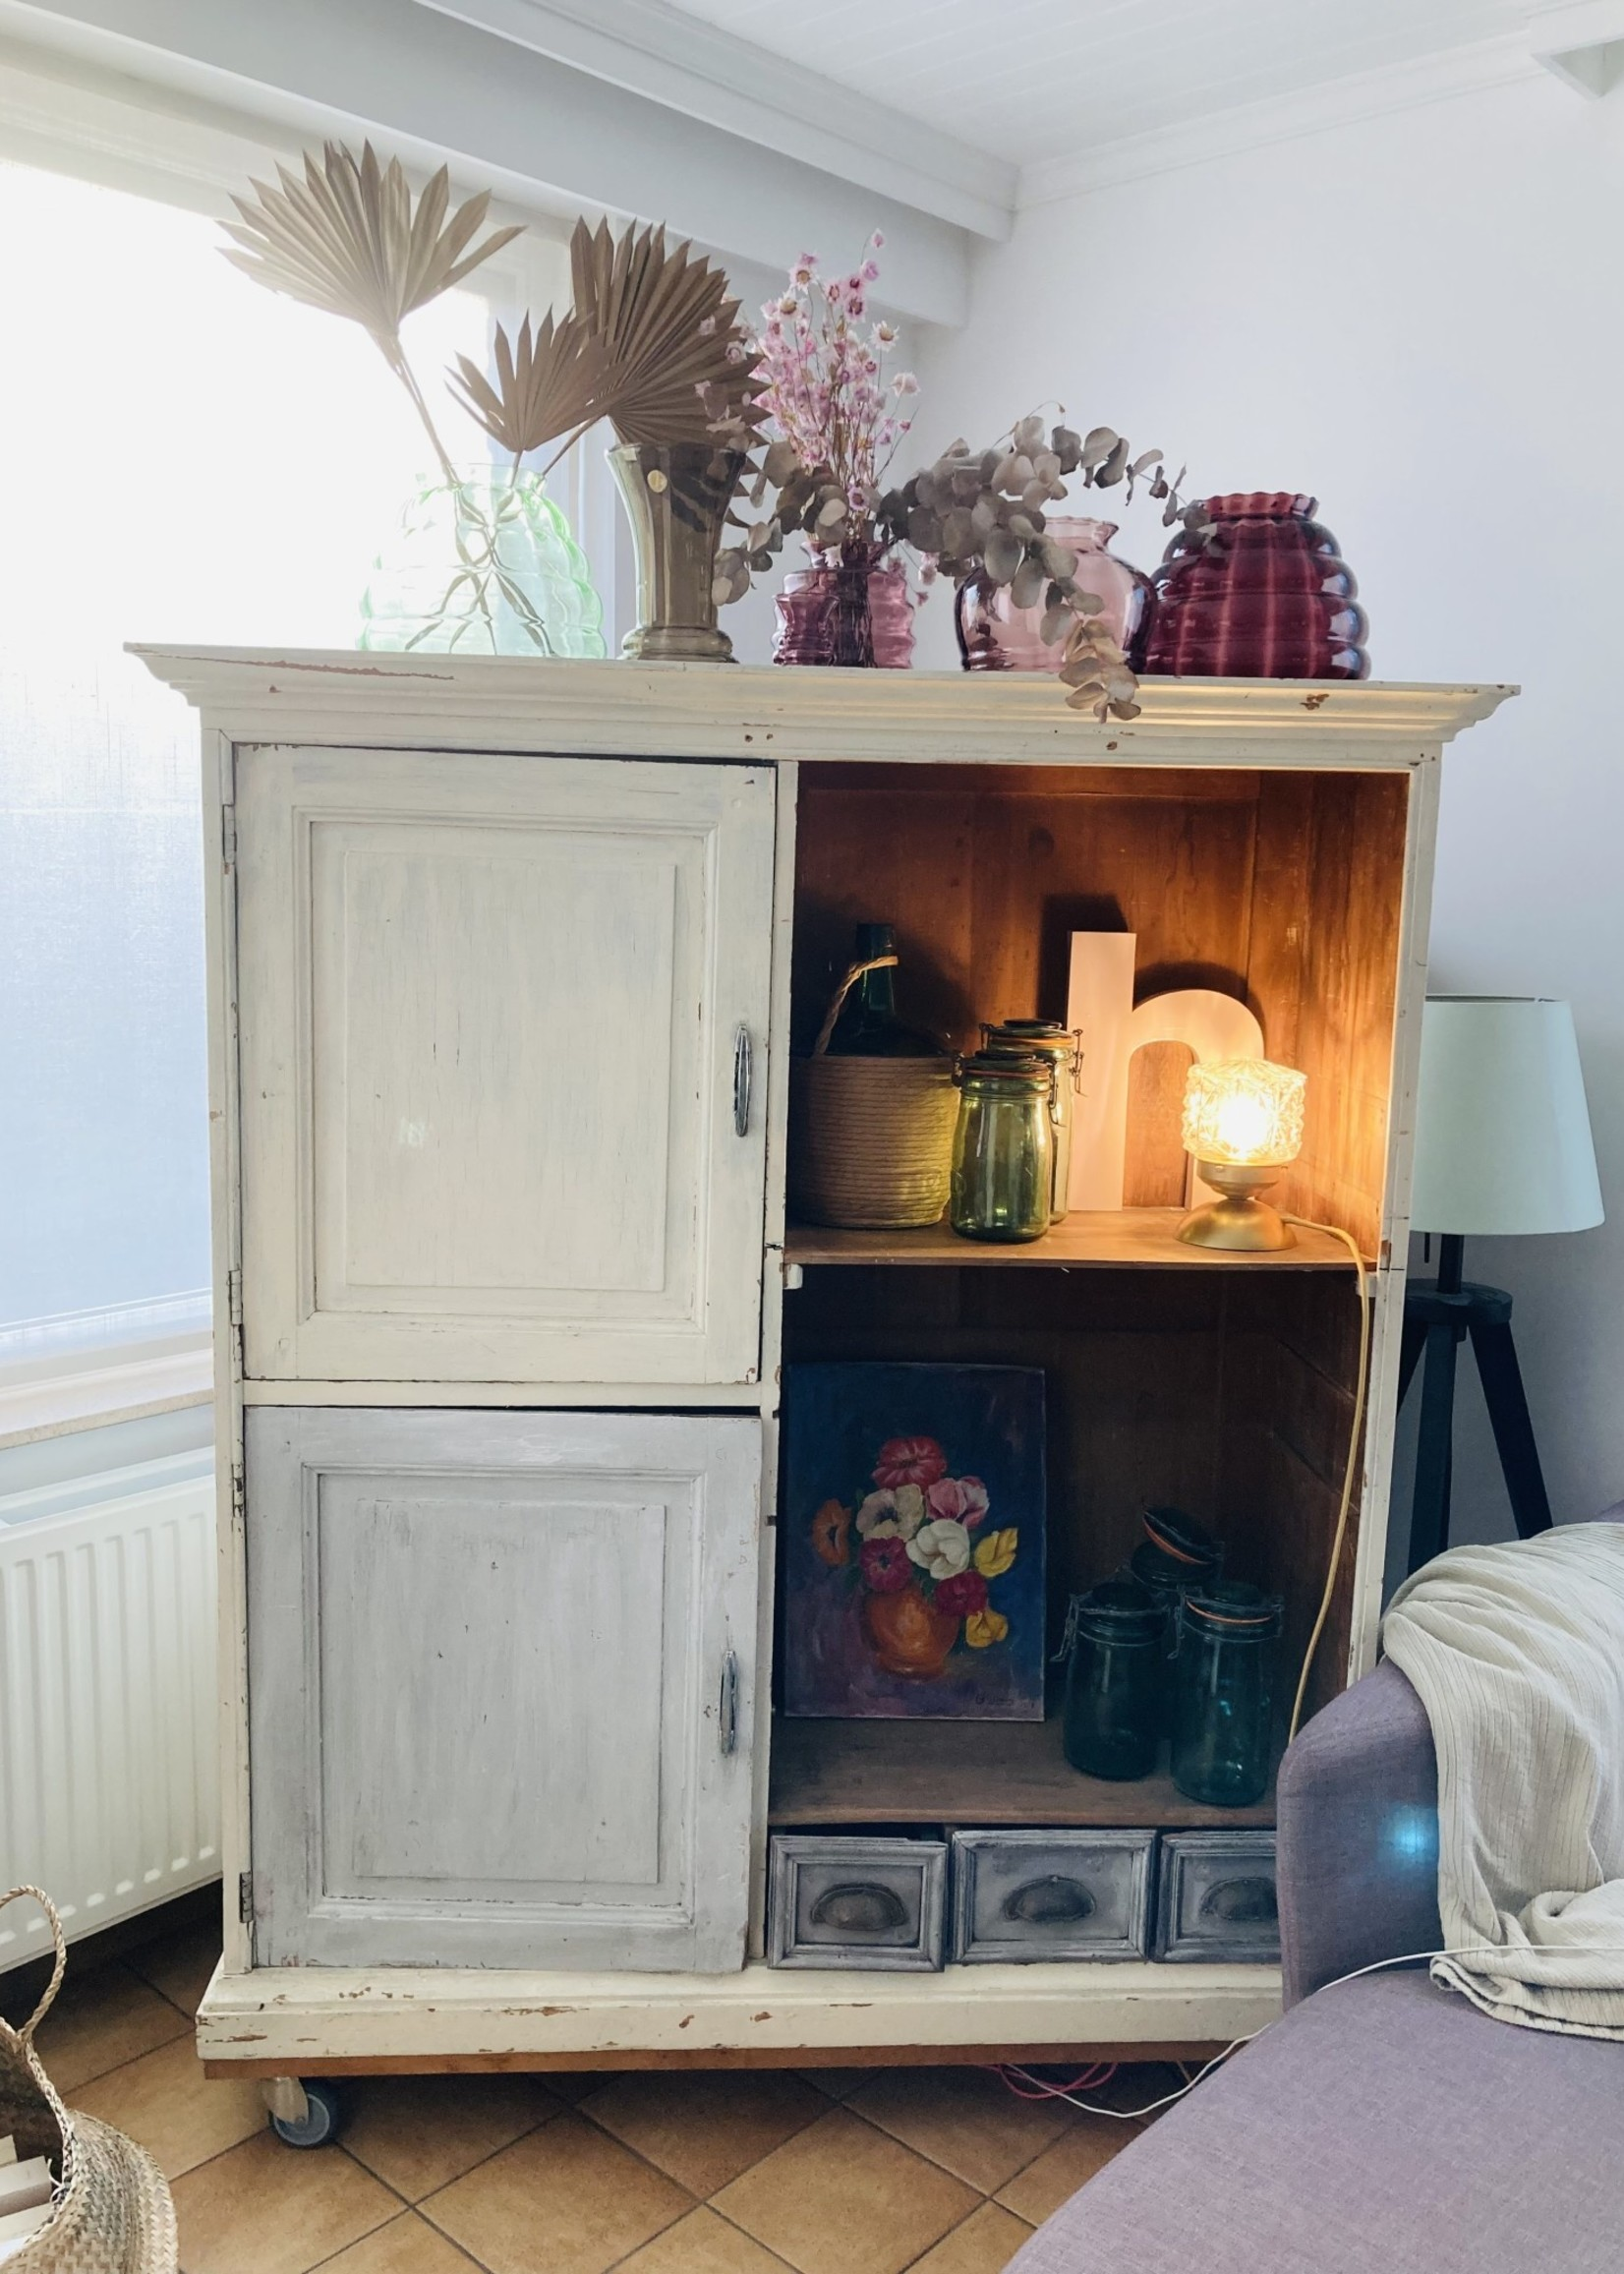 Antique Cabinet with white and grey patina, with 2 doors and 3 small drawers